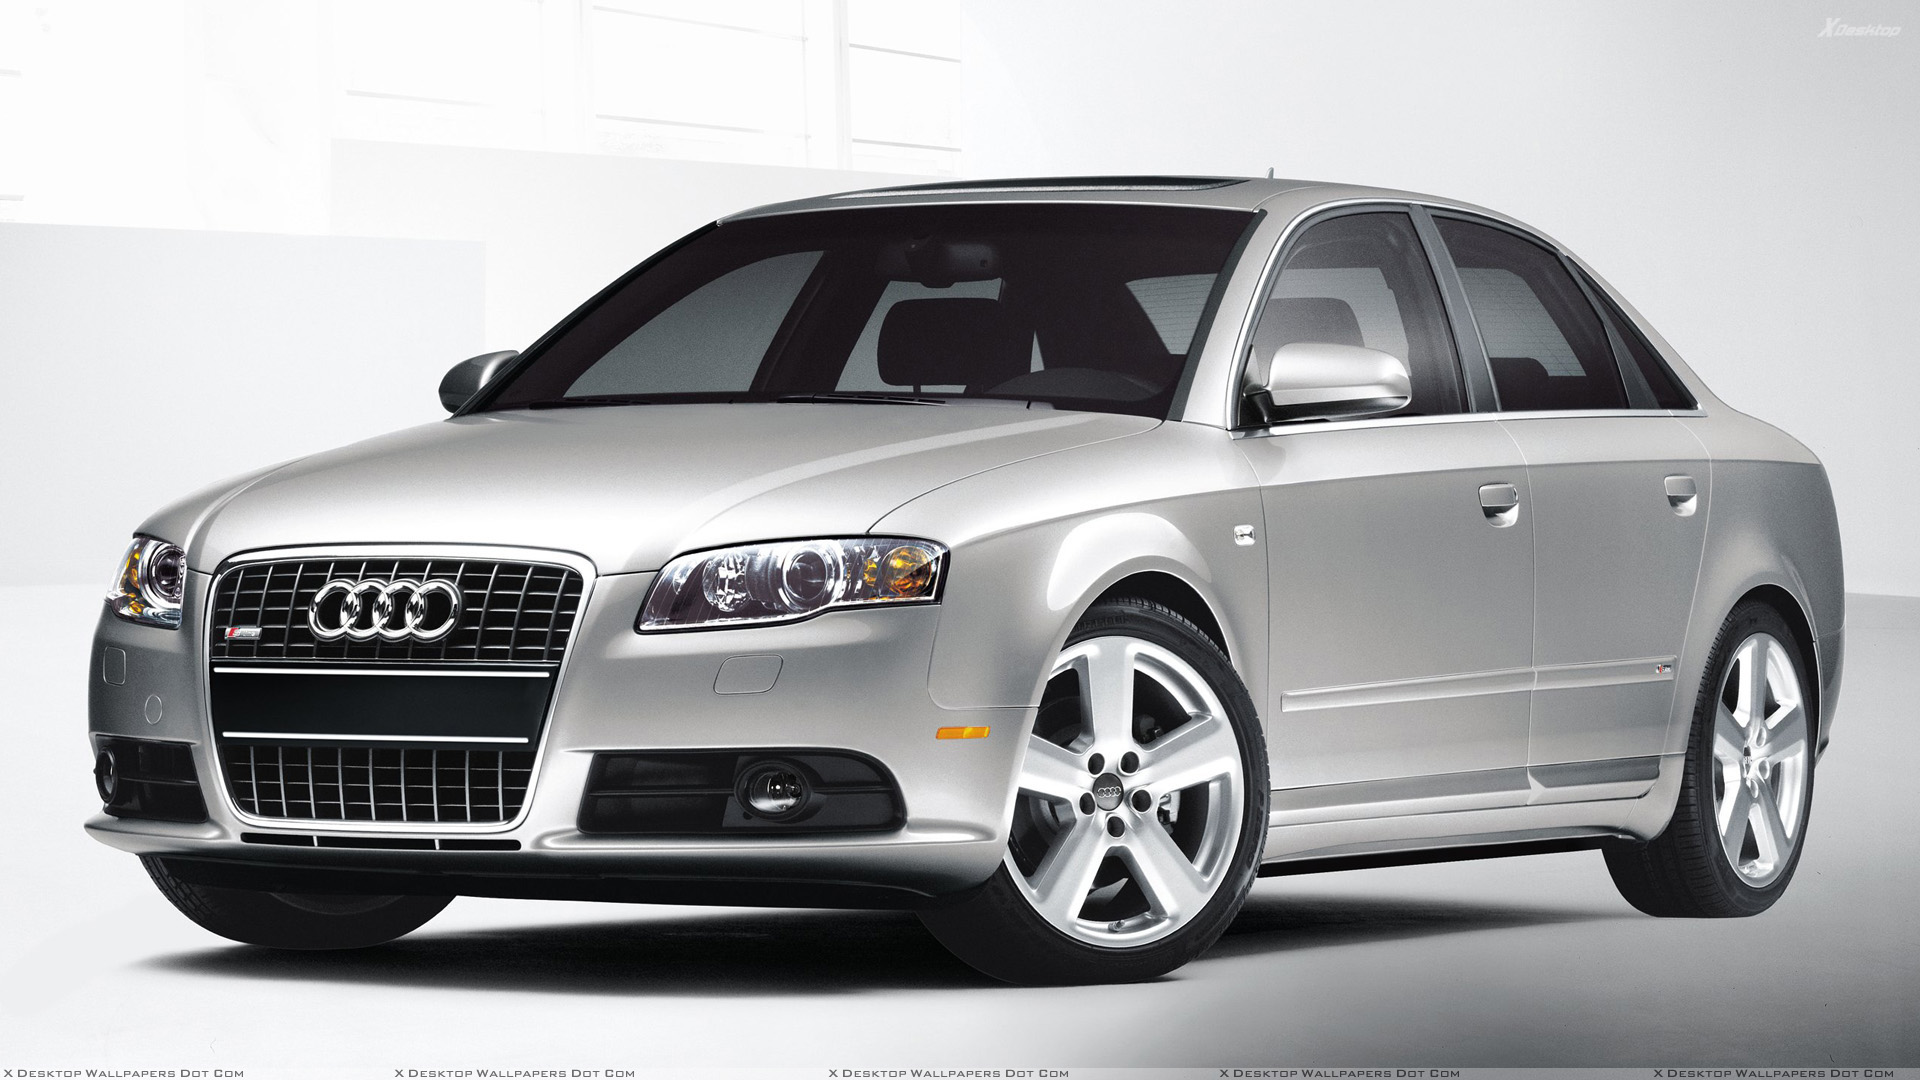 Silvercar Looks To Make Renting A Car Easier And HassleFree Rentexas - Audi silver car